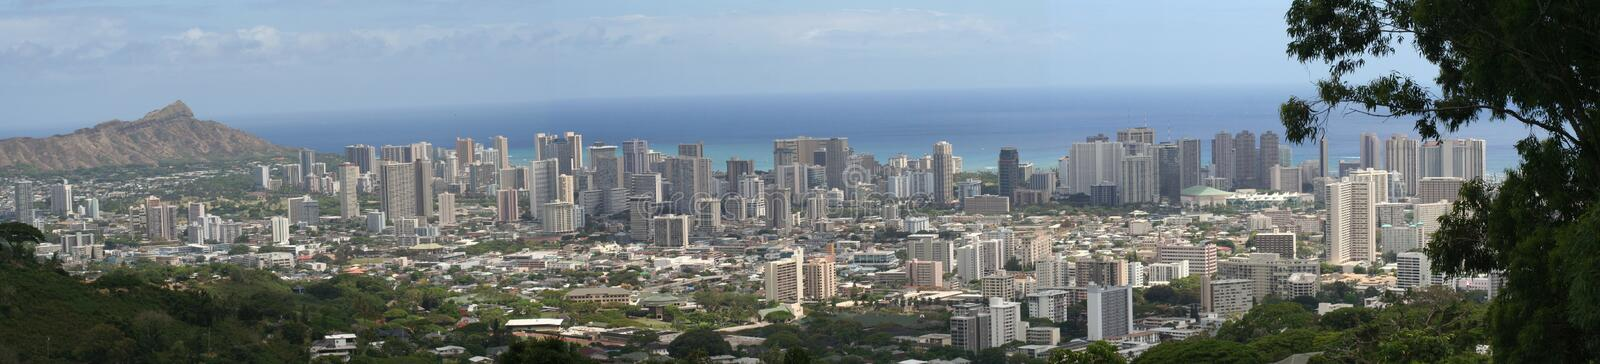 Panorama of Honolulu/Waikiki royalty free stock photography